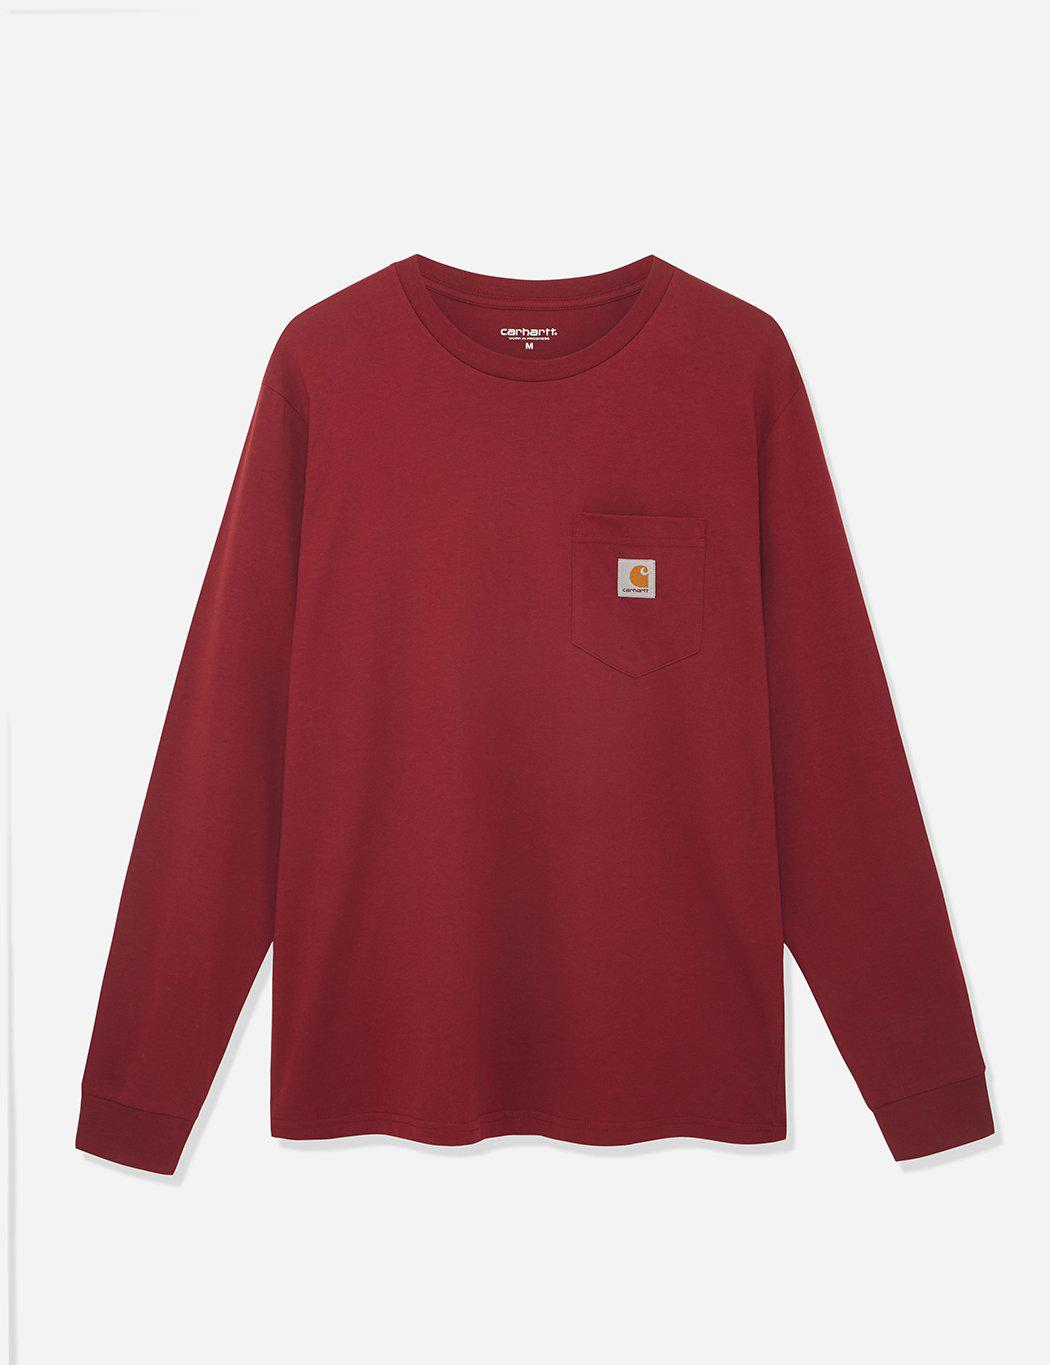 fbed80781 Lyst - Carhartt Pocket Long Sleeve T-shirt in Red for Men